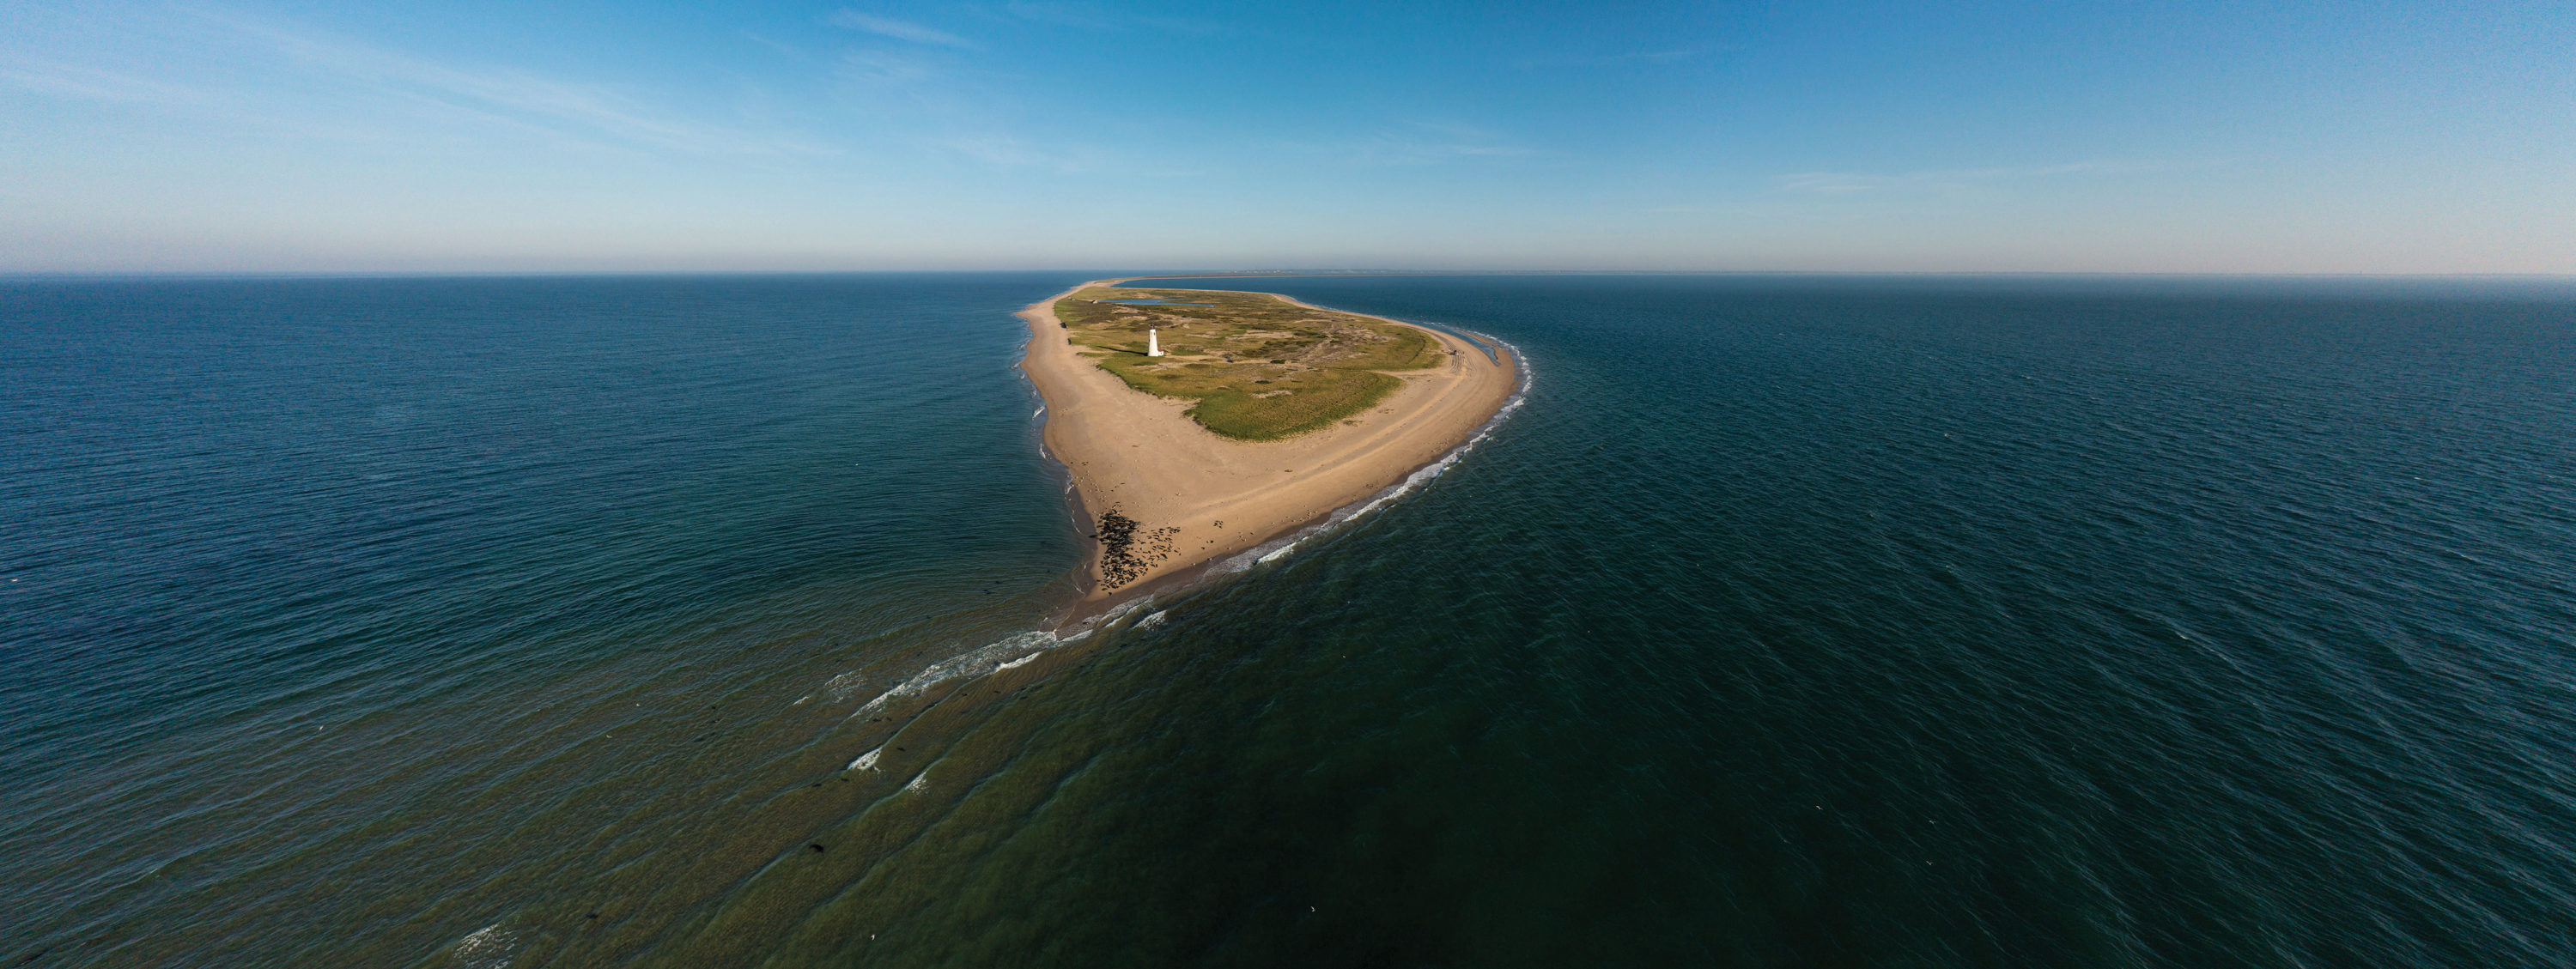 The end of Coskata-Coatue Wildlife Refuge, offshore from the Great Point Lighthouse. Courtesy Above Summit/The Trustees of Reservations